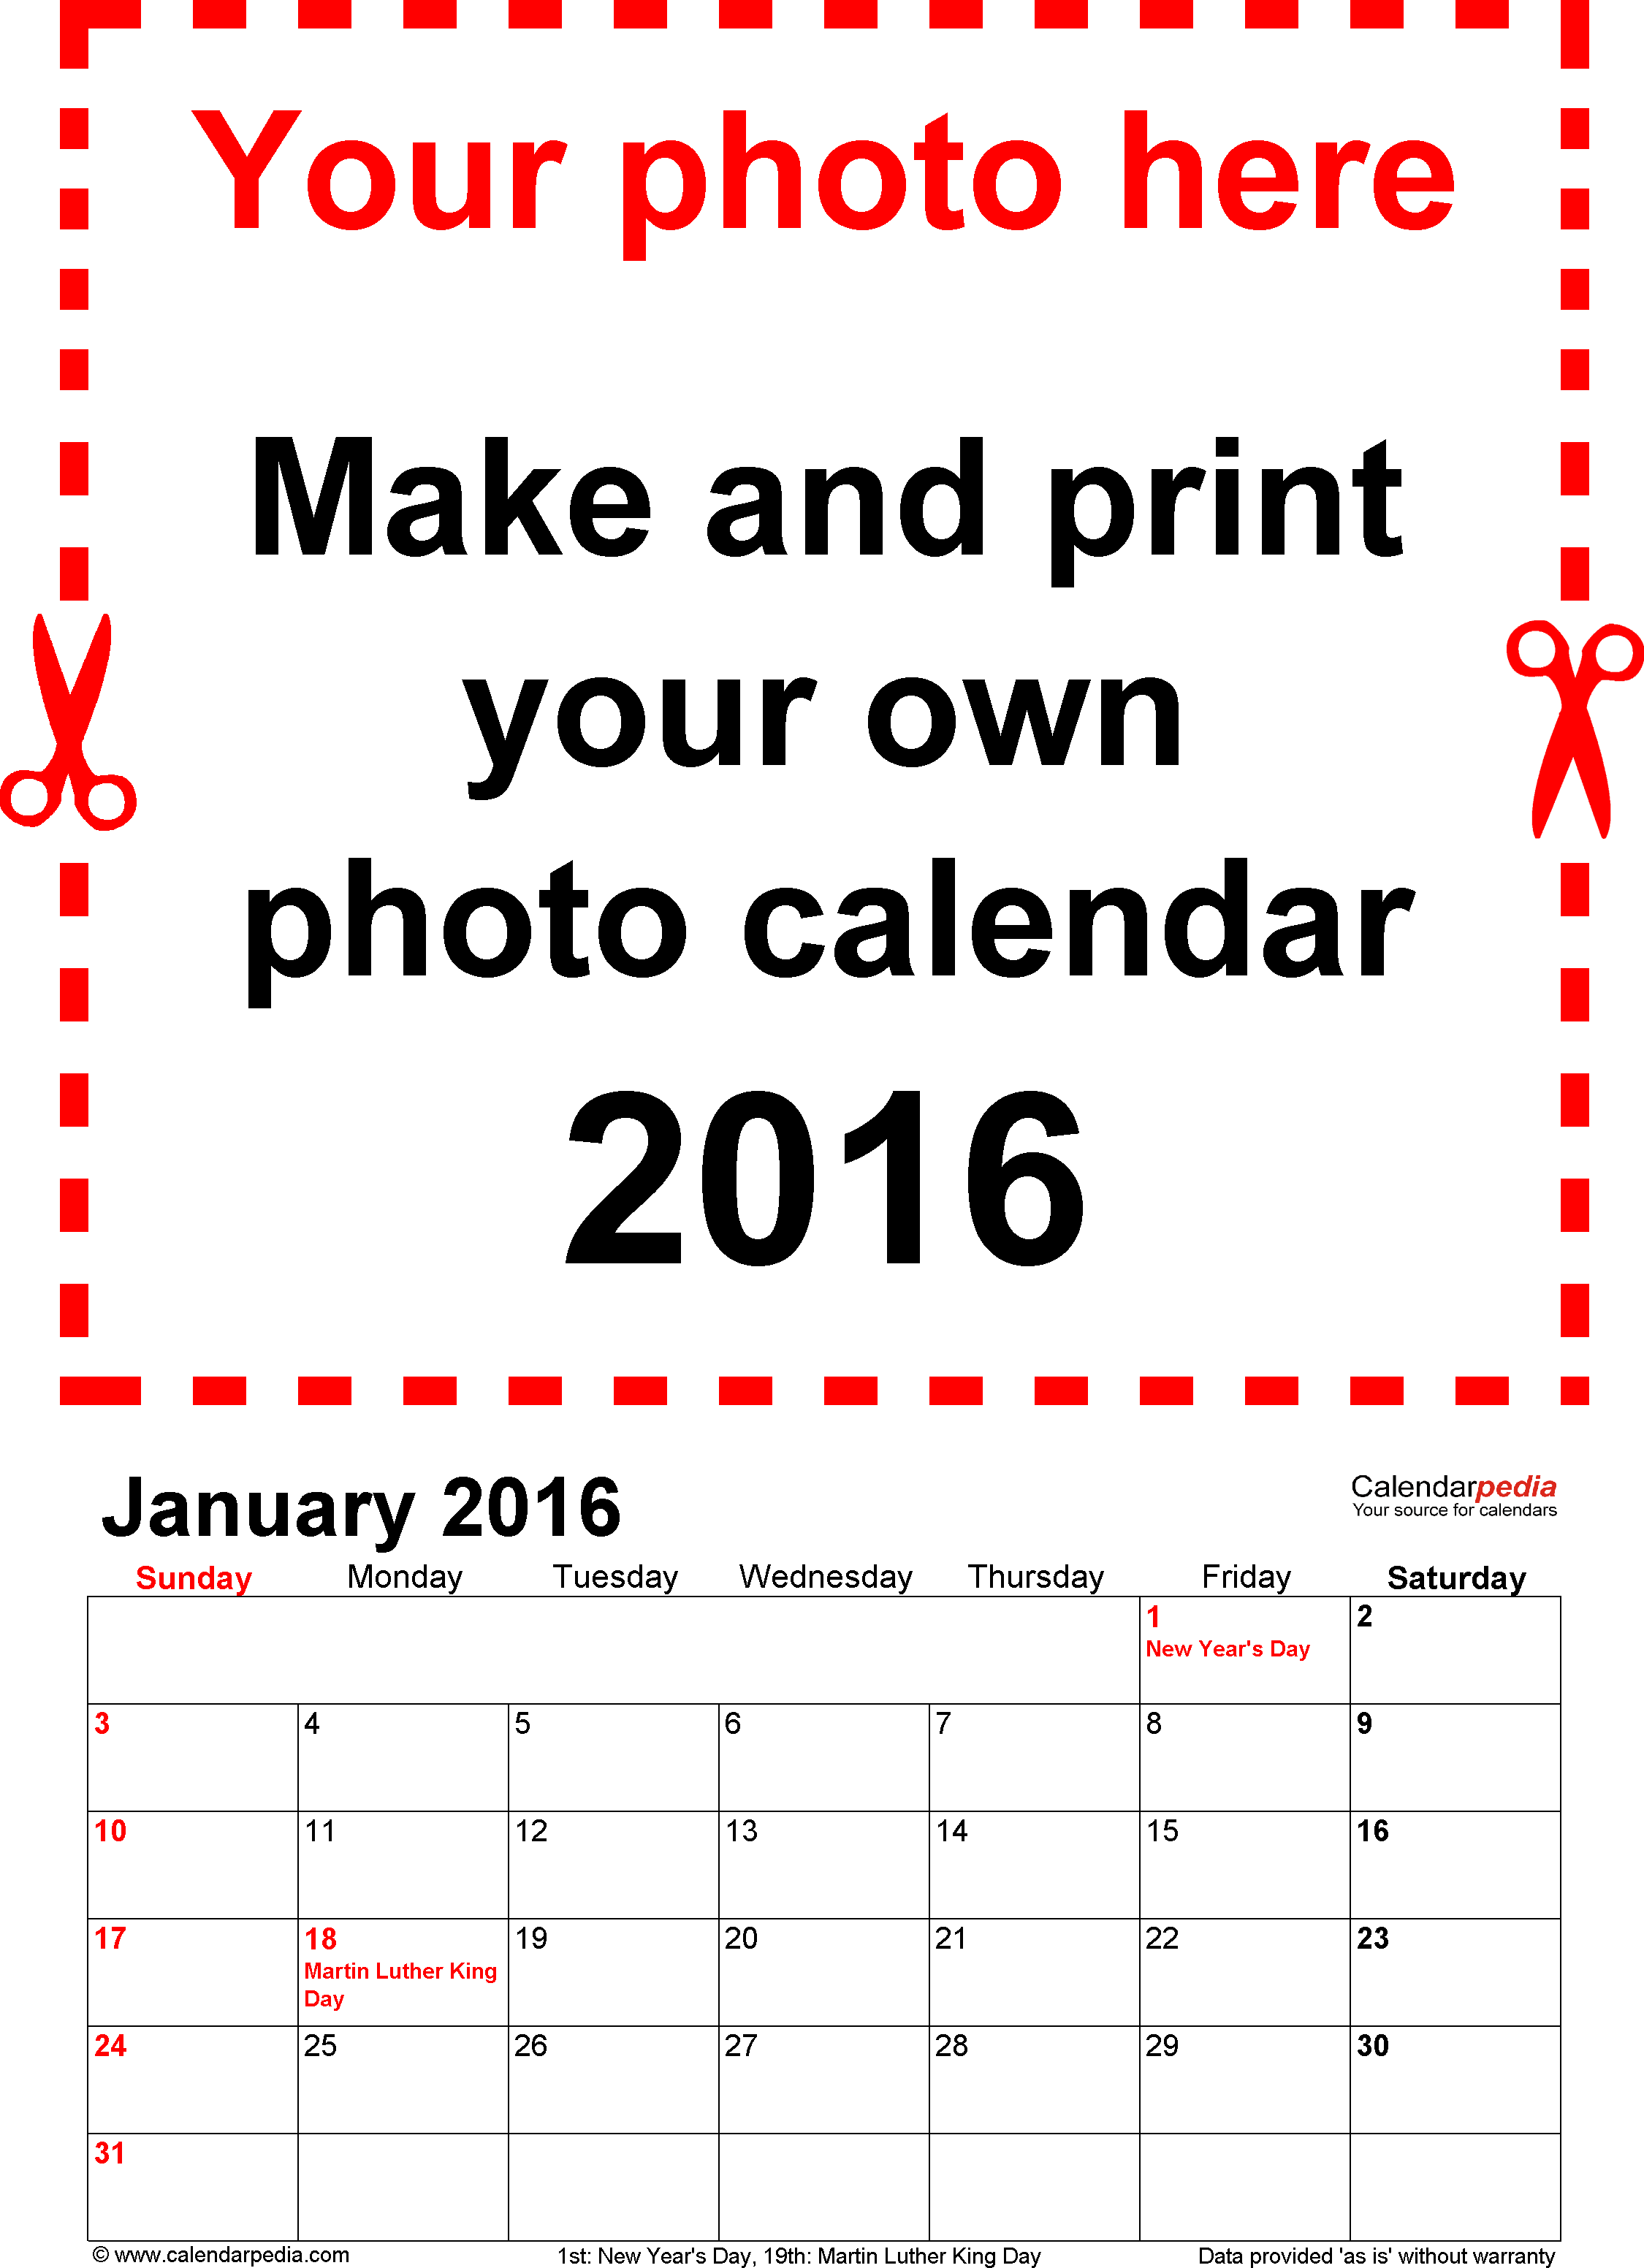 Download Template 1: Photo calendar 2016 for Excel, 12 pages, portrait format, standard layout